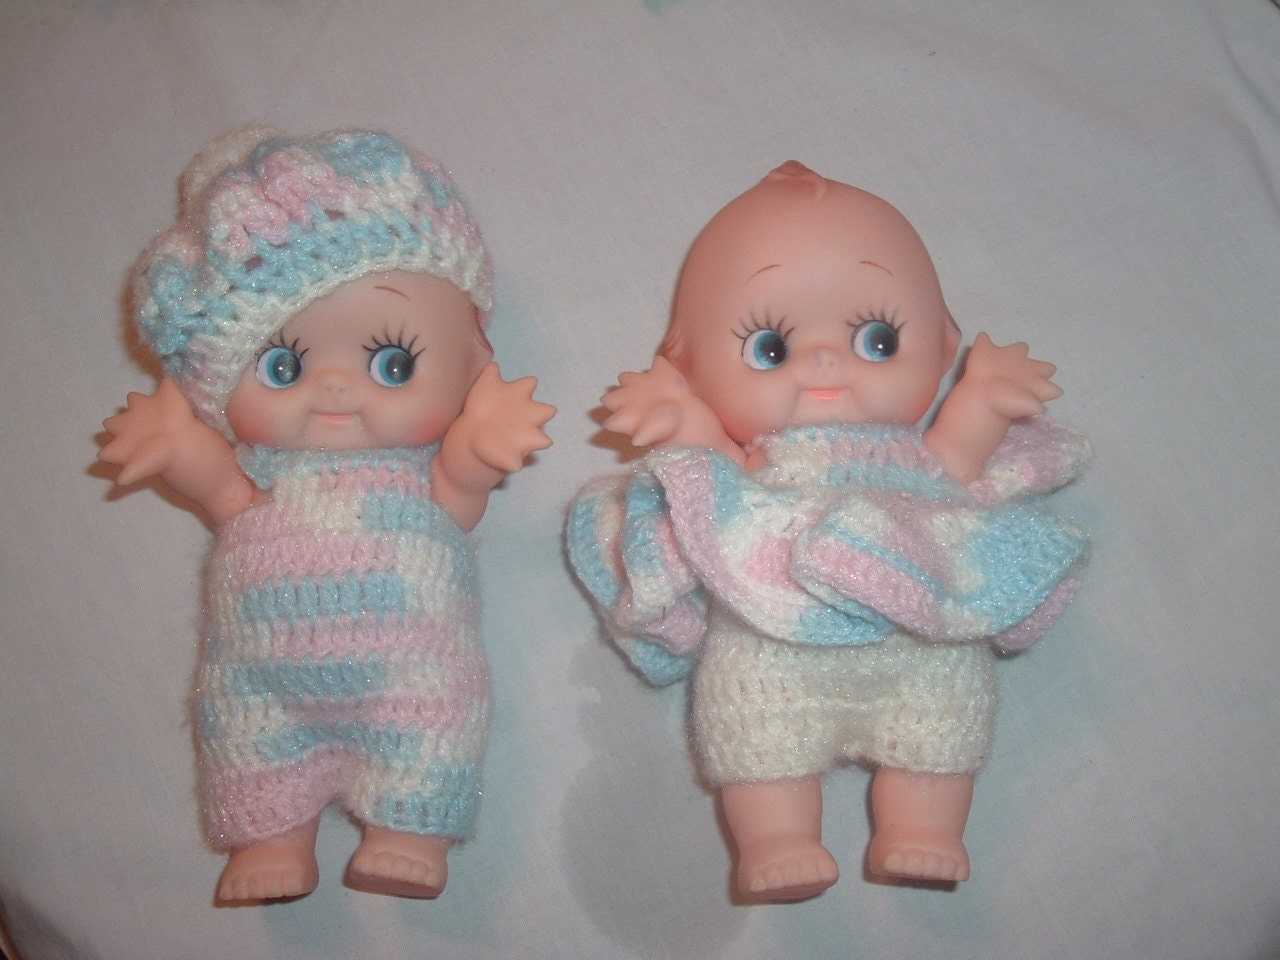 twin baby dolls with homemade crochet clothes - handymanhowto